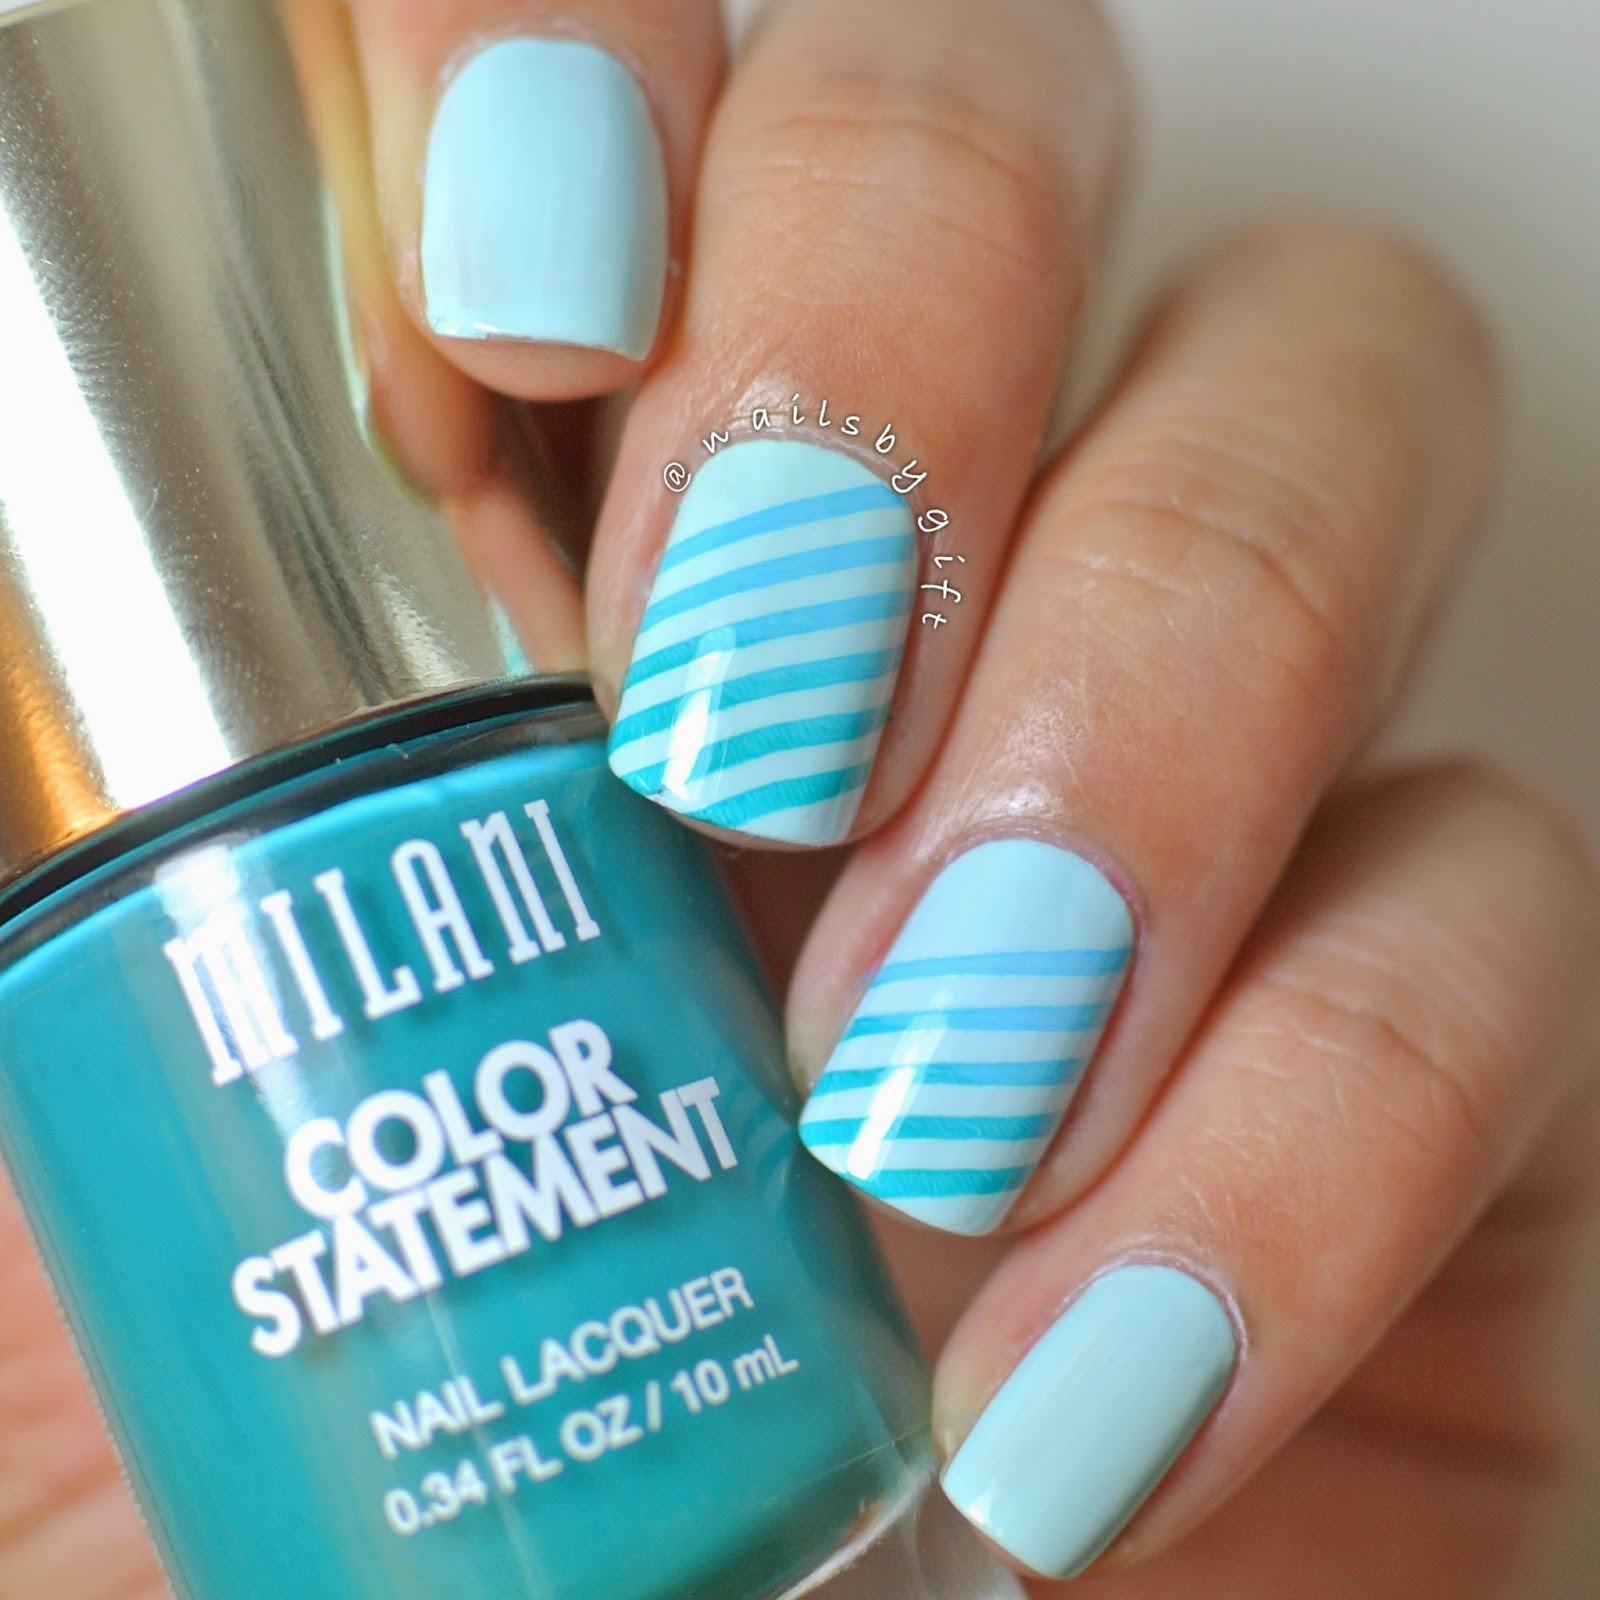 Clumpy Nail Polish: Nails By Gift: Milani Nail Polish Review Part 1